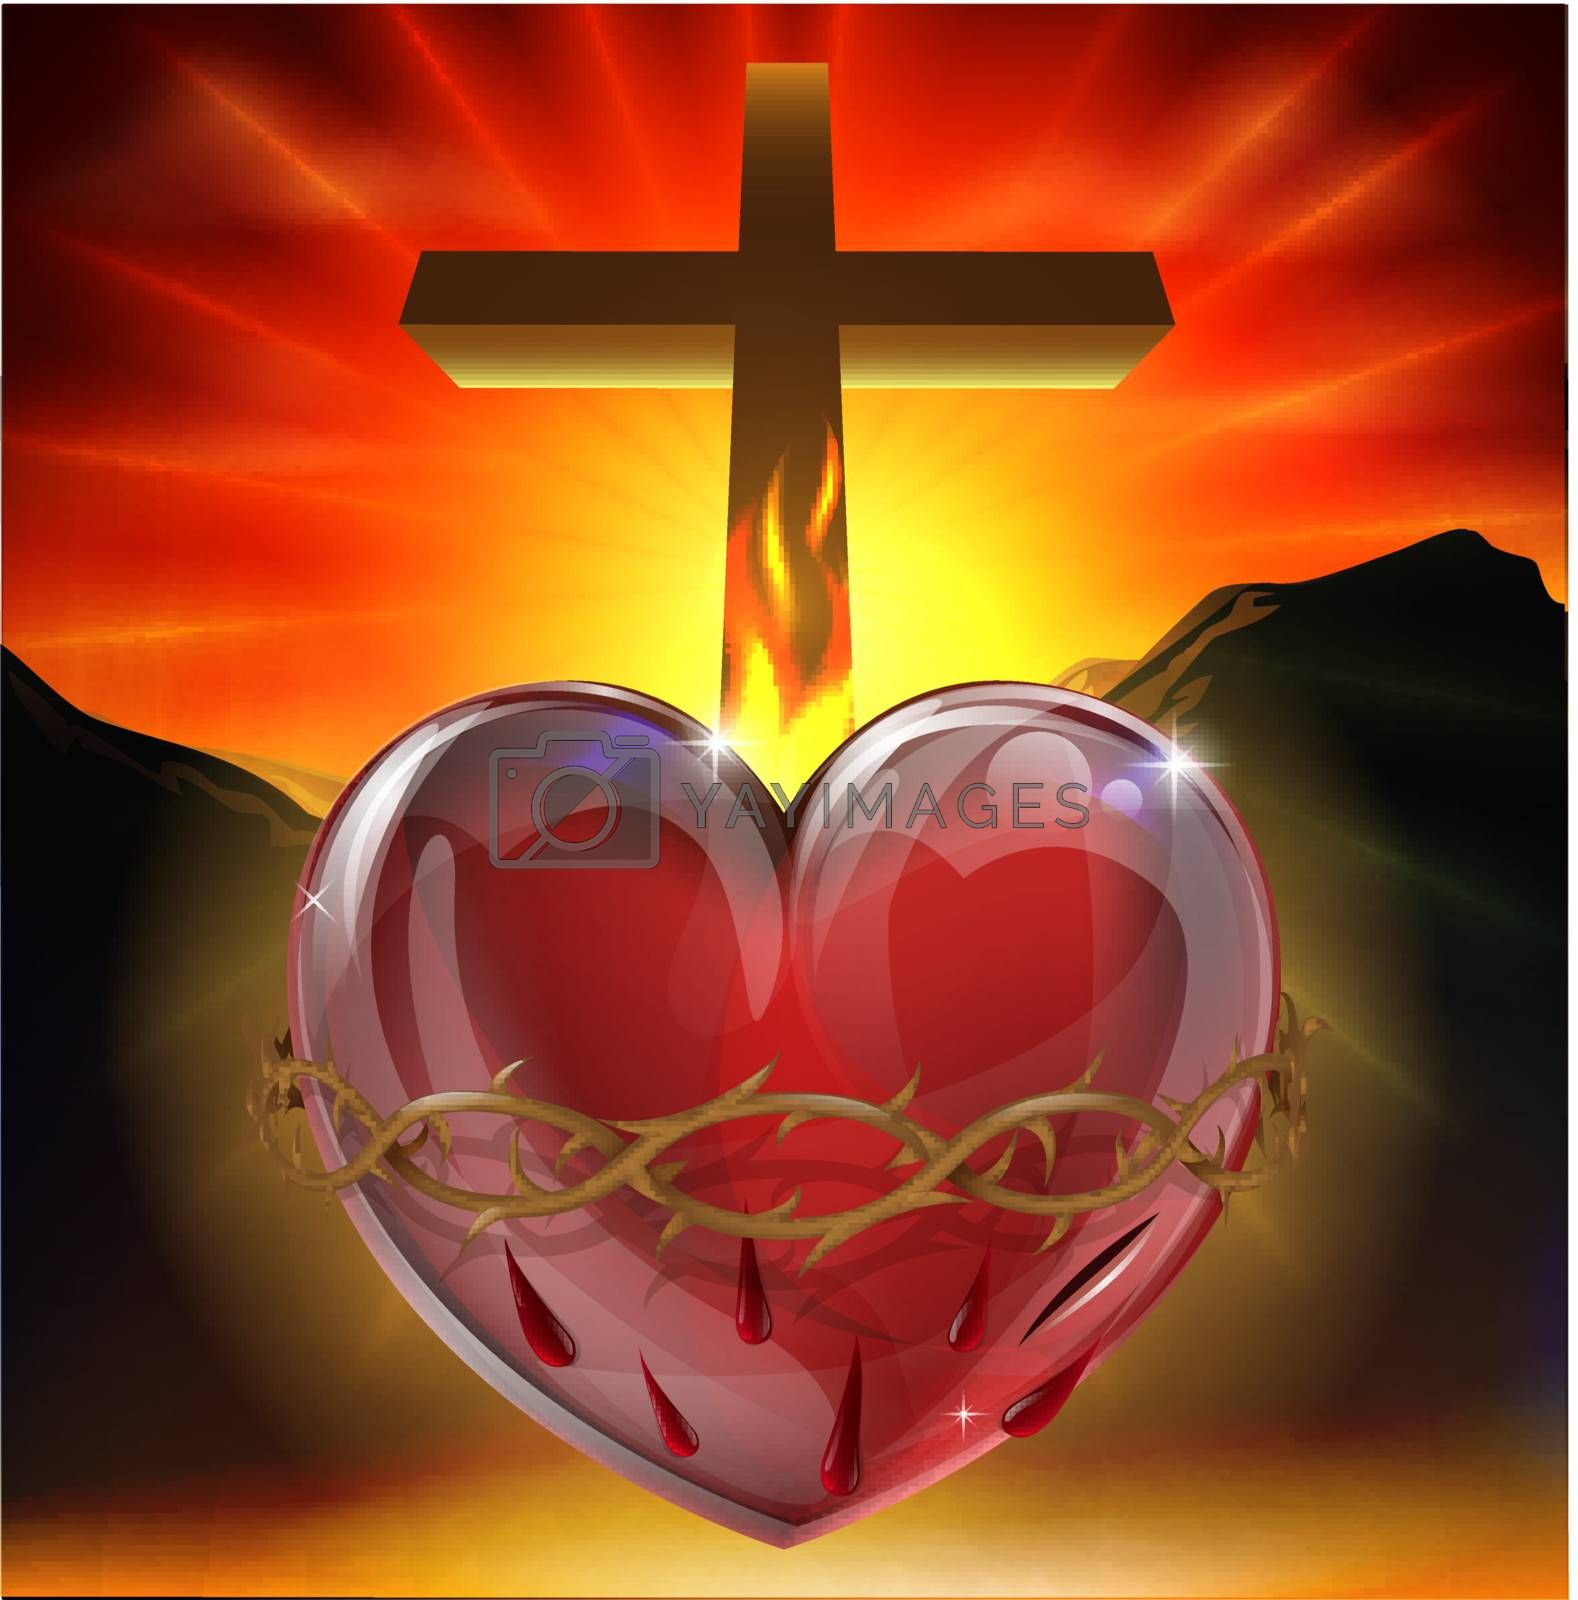 Illustration of the Christian symbol of the sacred heart. A heart shining with divine light with crown of thorns,  lance wound and flame representing divine love.